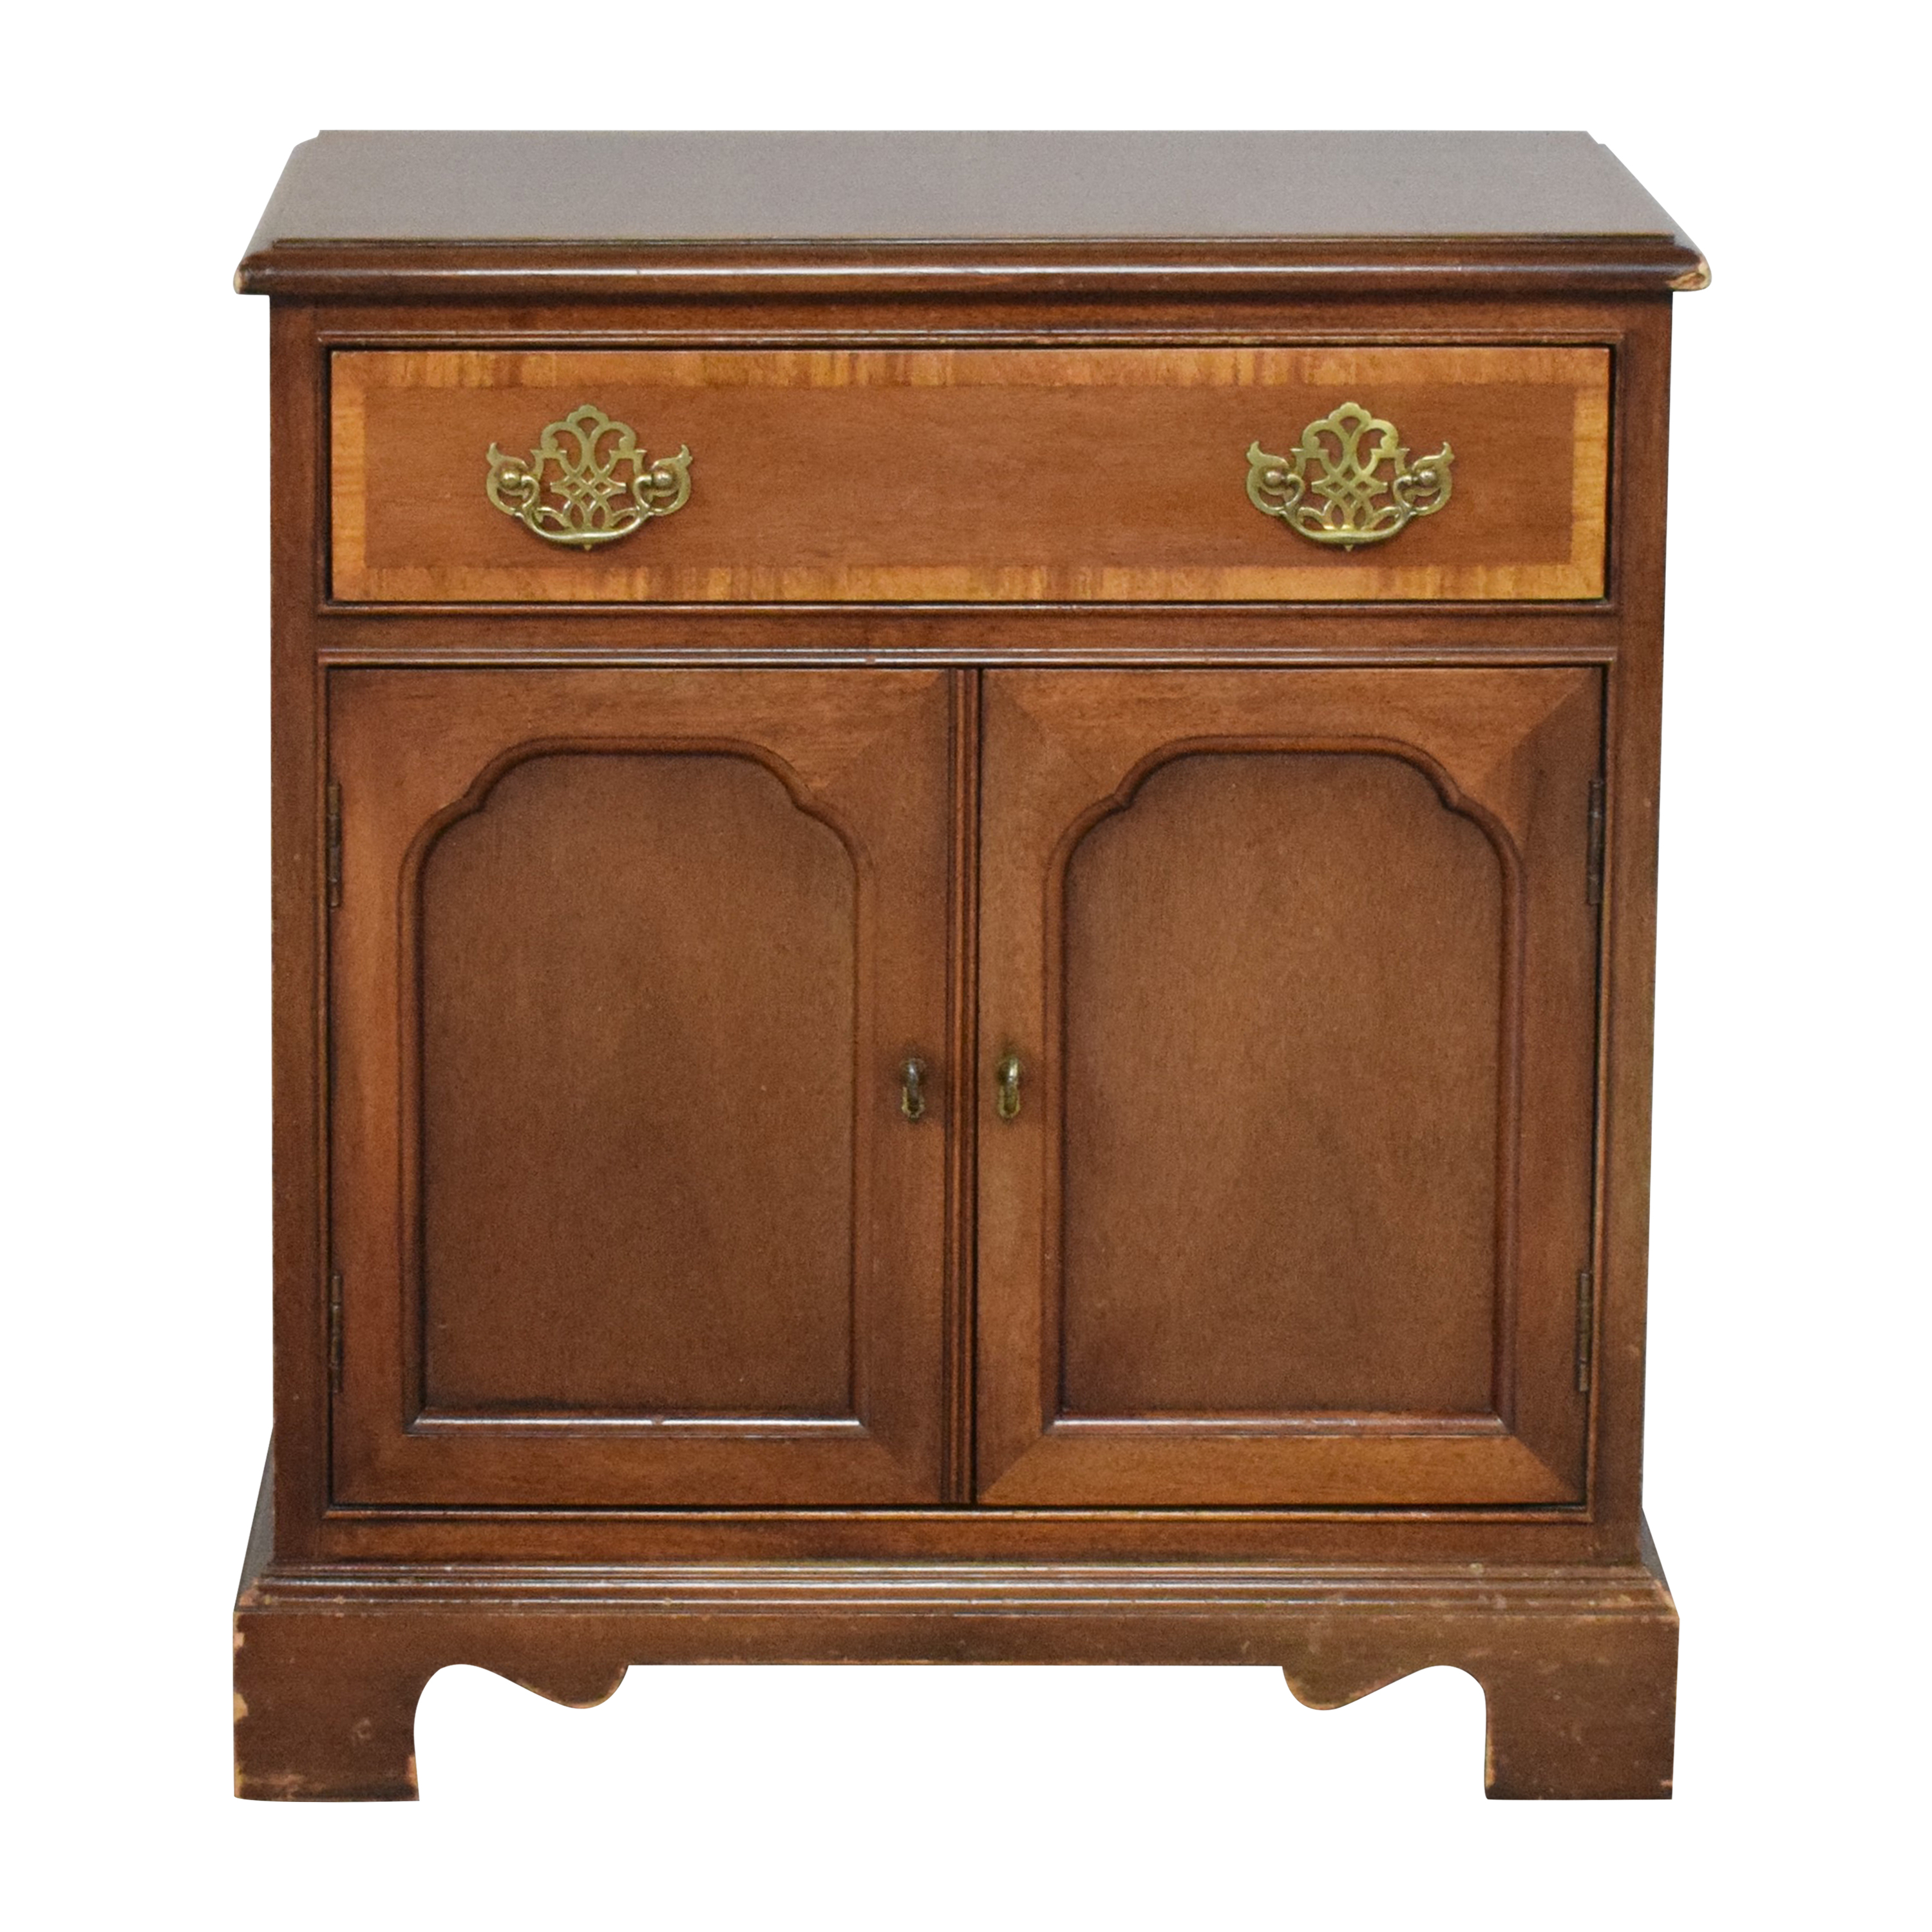 shop Hickory Chair Hickory Chair American Masterpiece Collection Nightstand online